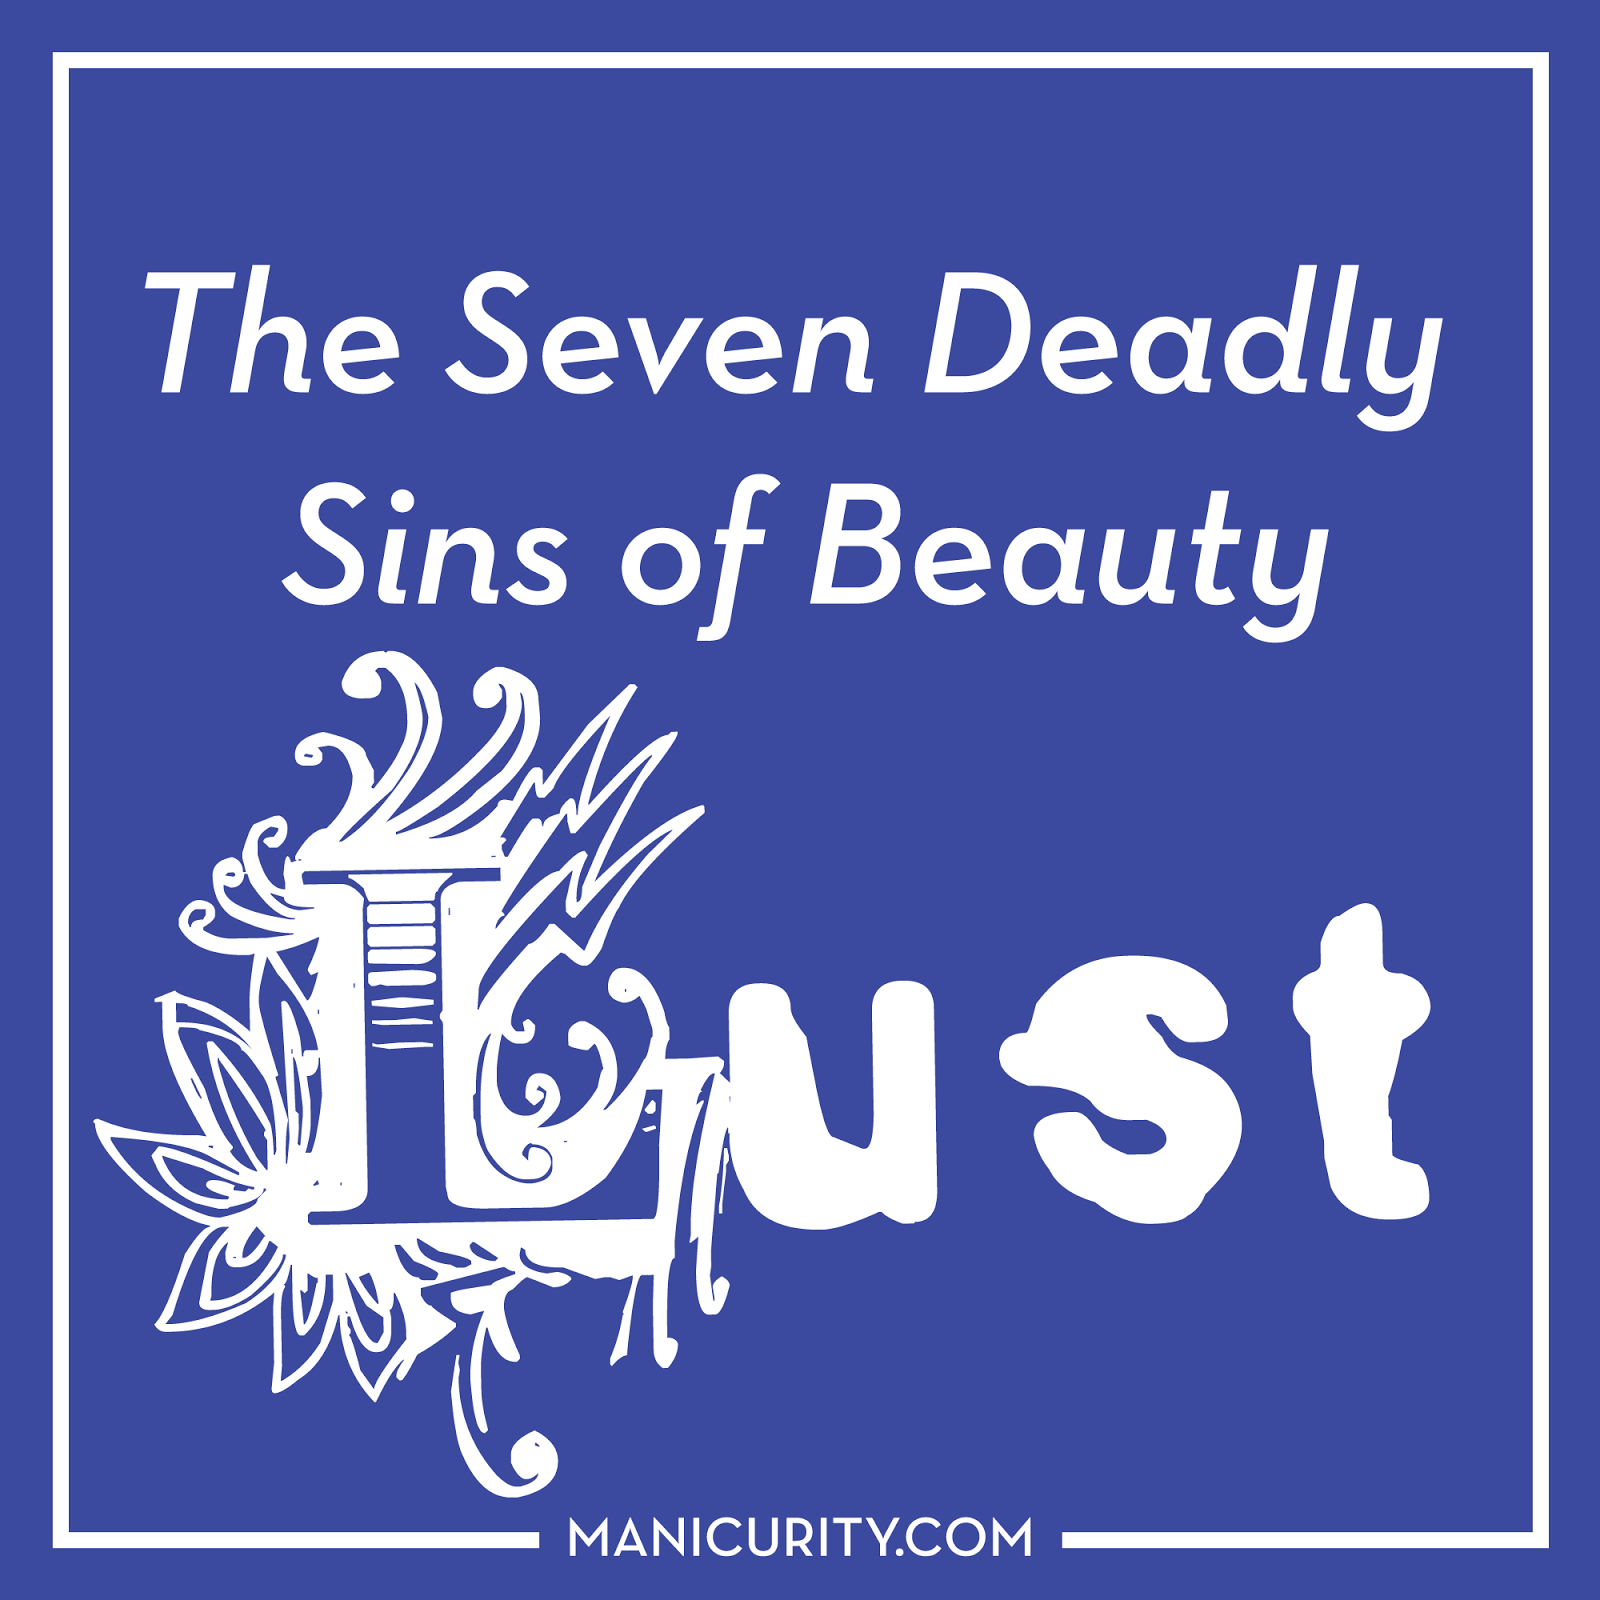 The Seven Deadly Sins of Beauty Tag - Lust | Manicurity.com